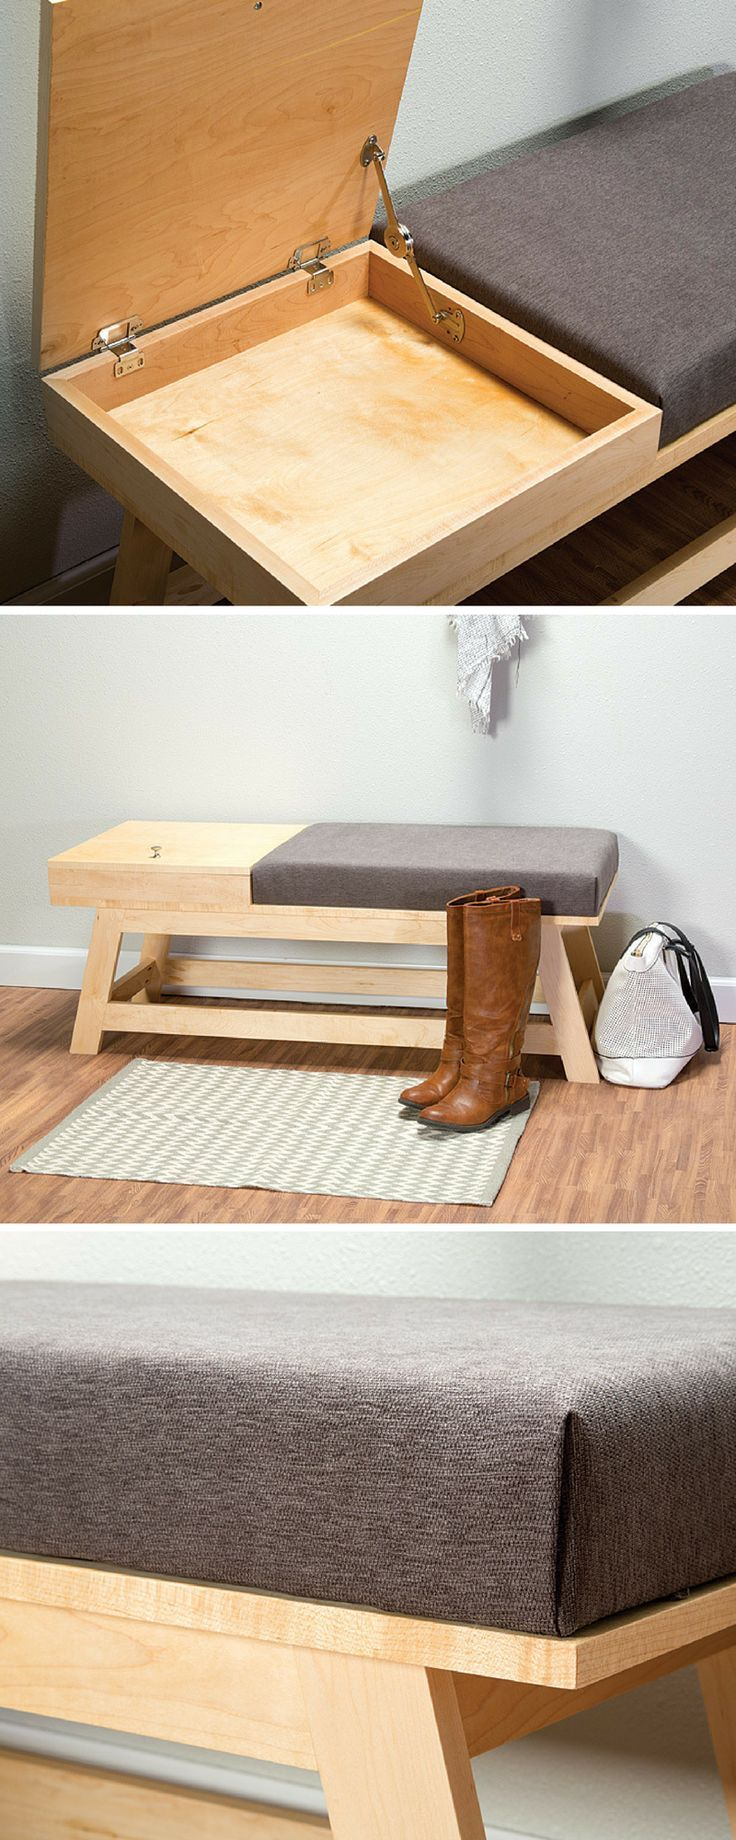 This bench is perfect for a hallway, bedroom, living room